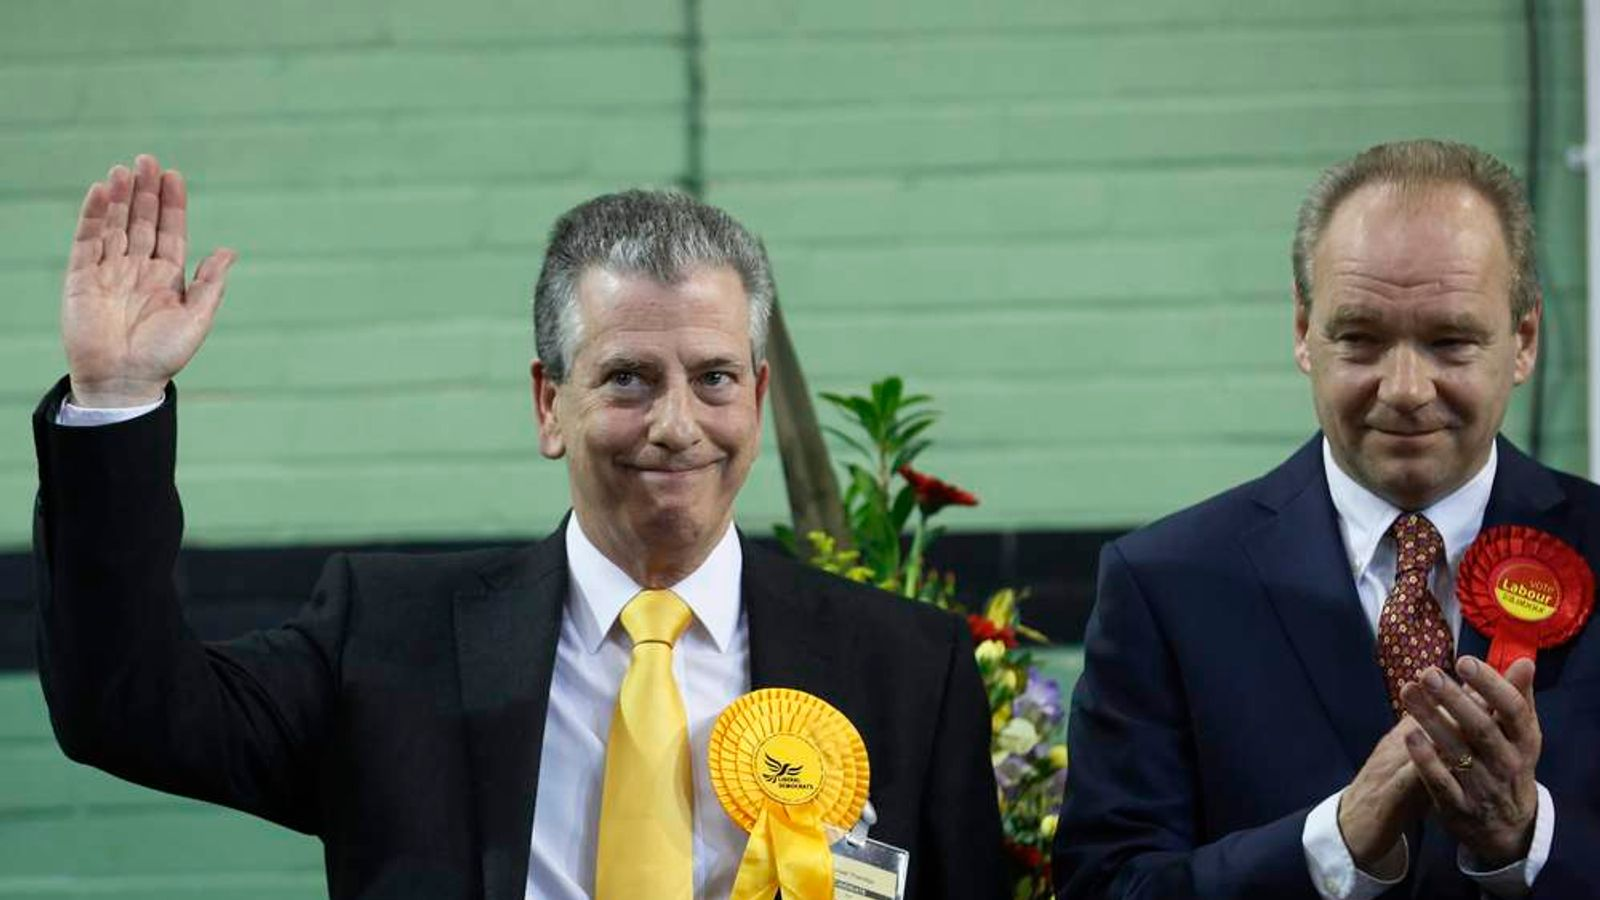 Liberal Democrat candidate Thornton celebrates his win